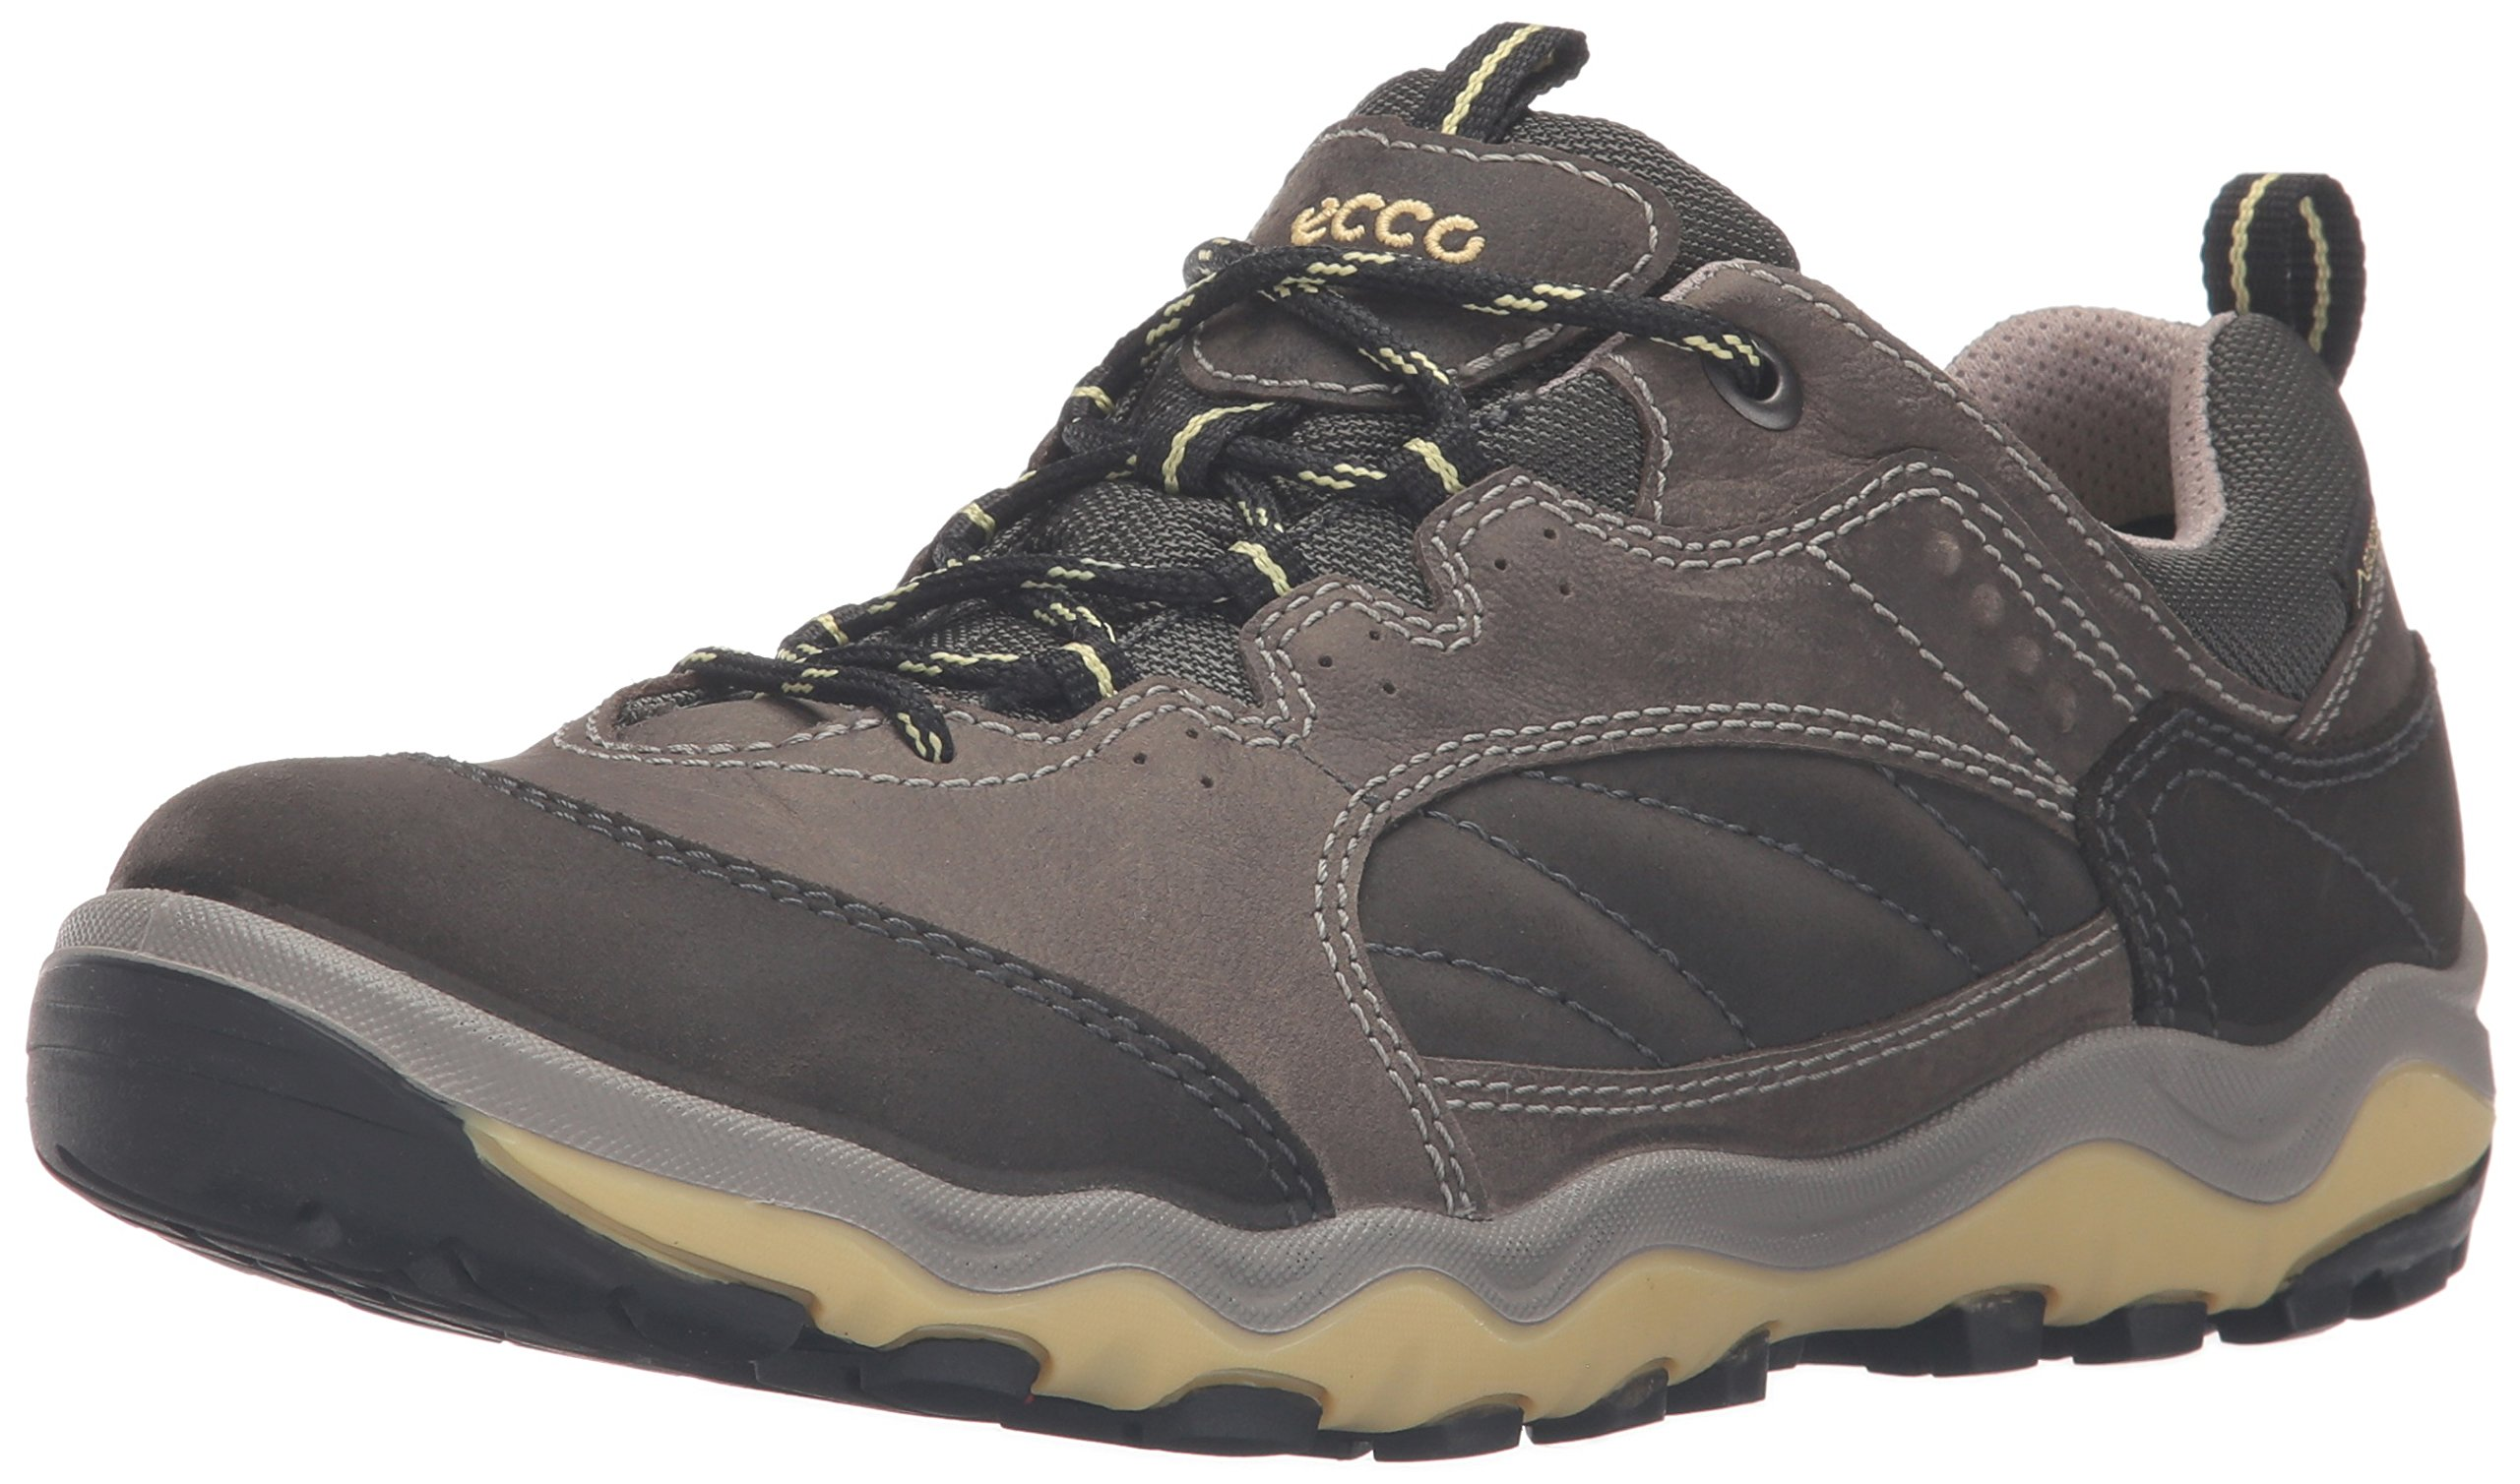 ECCO Women's Ulterra Lo GTX Hiking, Dark Shadow/Popcorn, 40 EU/9-9.5 M US